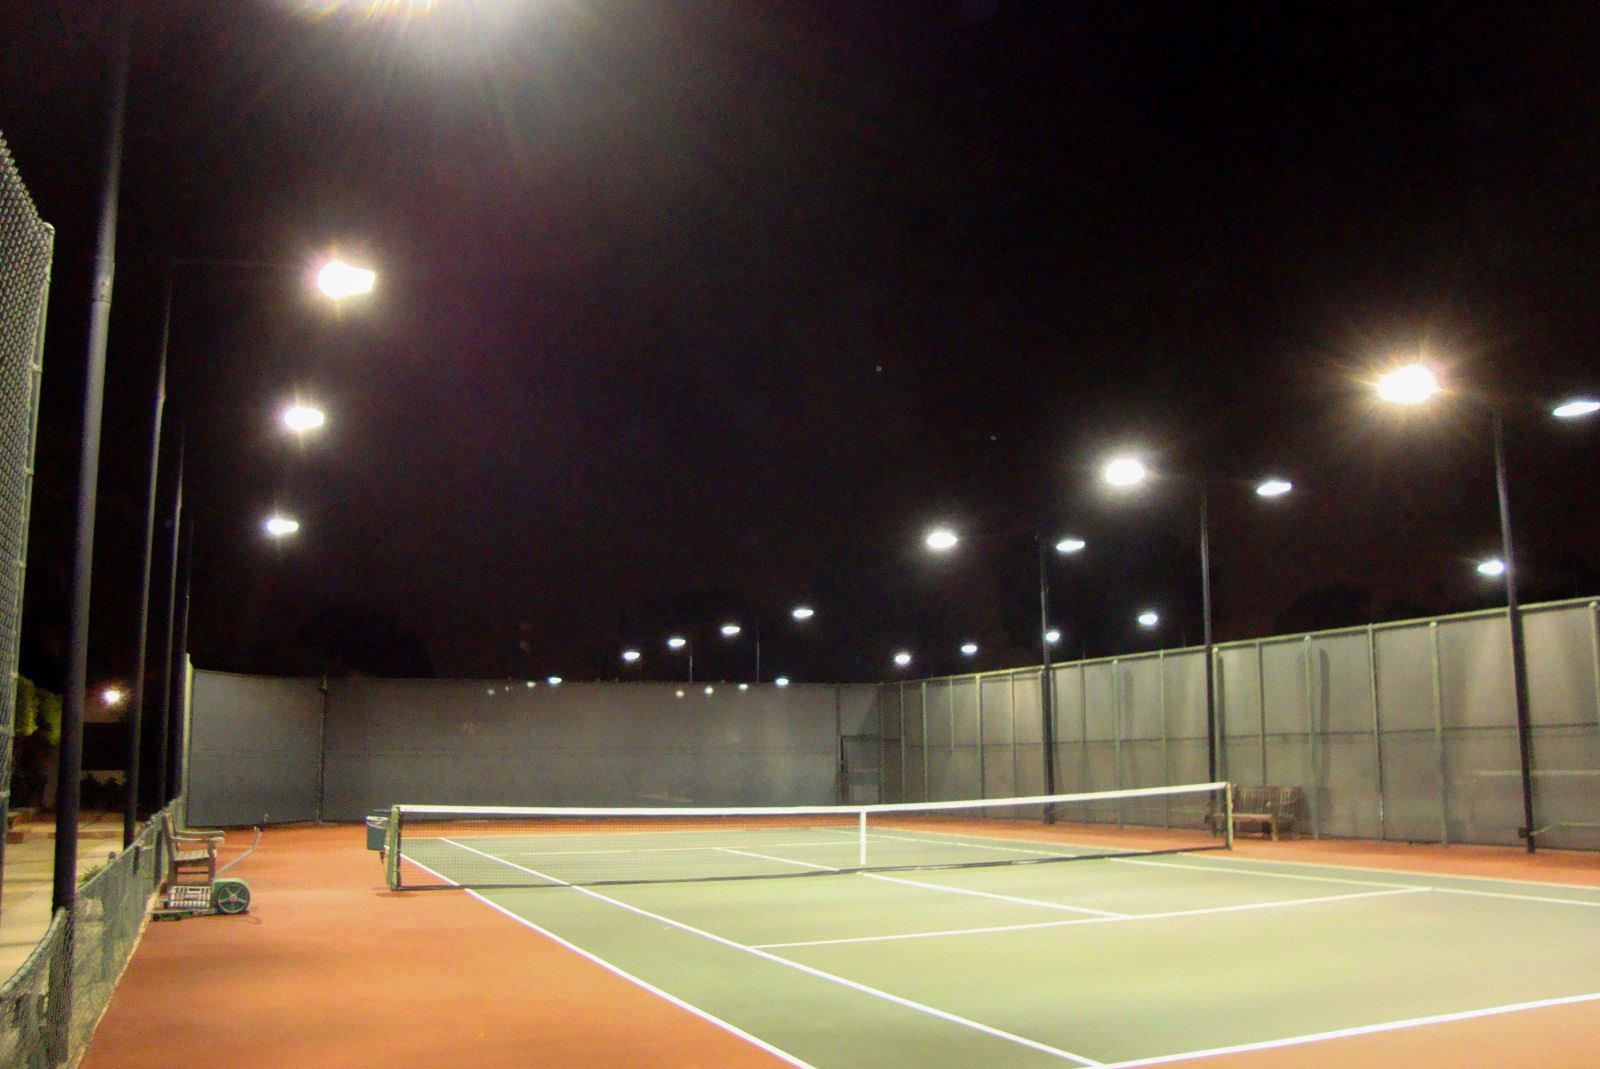 Brite court tennis lighting led tennis lighting for indoor outdoor brite court tennis lighting led tennis lighting for indoor outdoor tennis courts workwithnaturefo